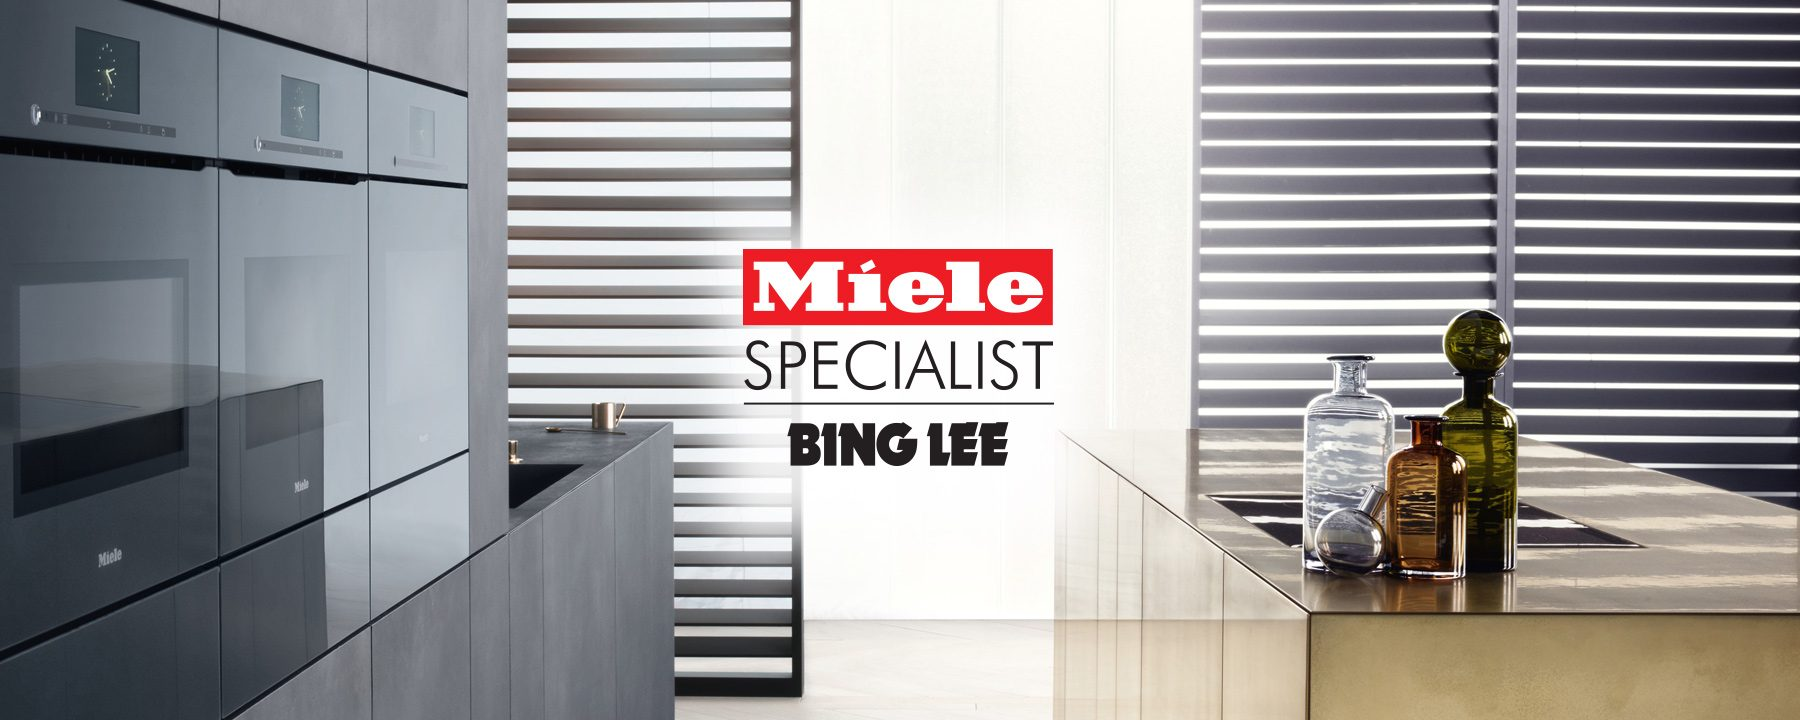 Miele Wkf 110 Https Mielespecialistbinglee Au 2017 07 25 Featured Content